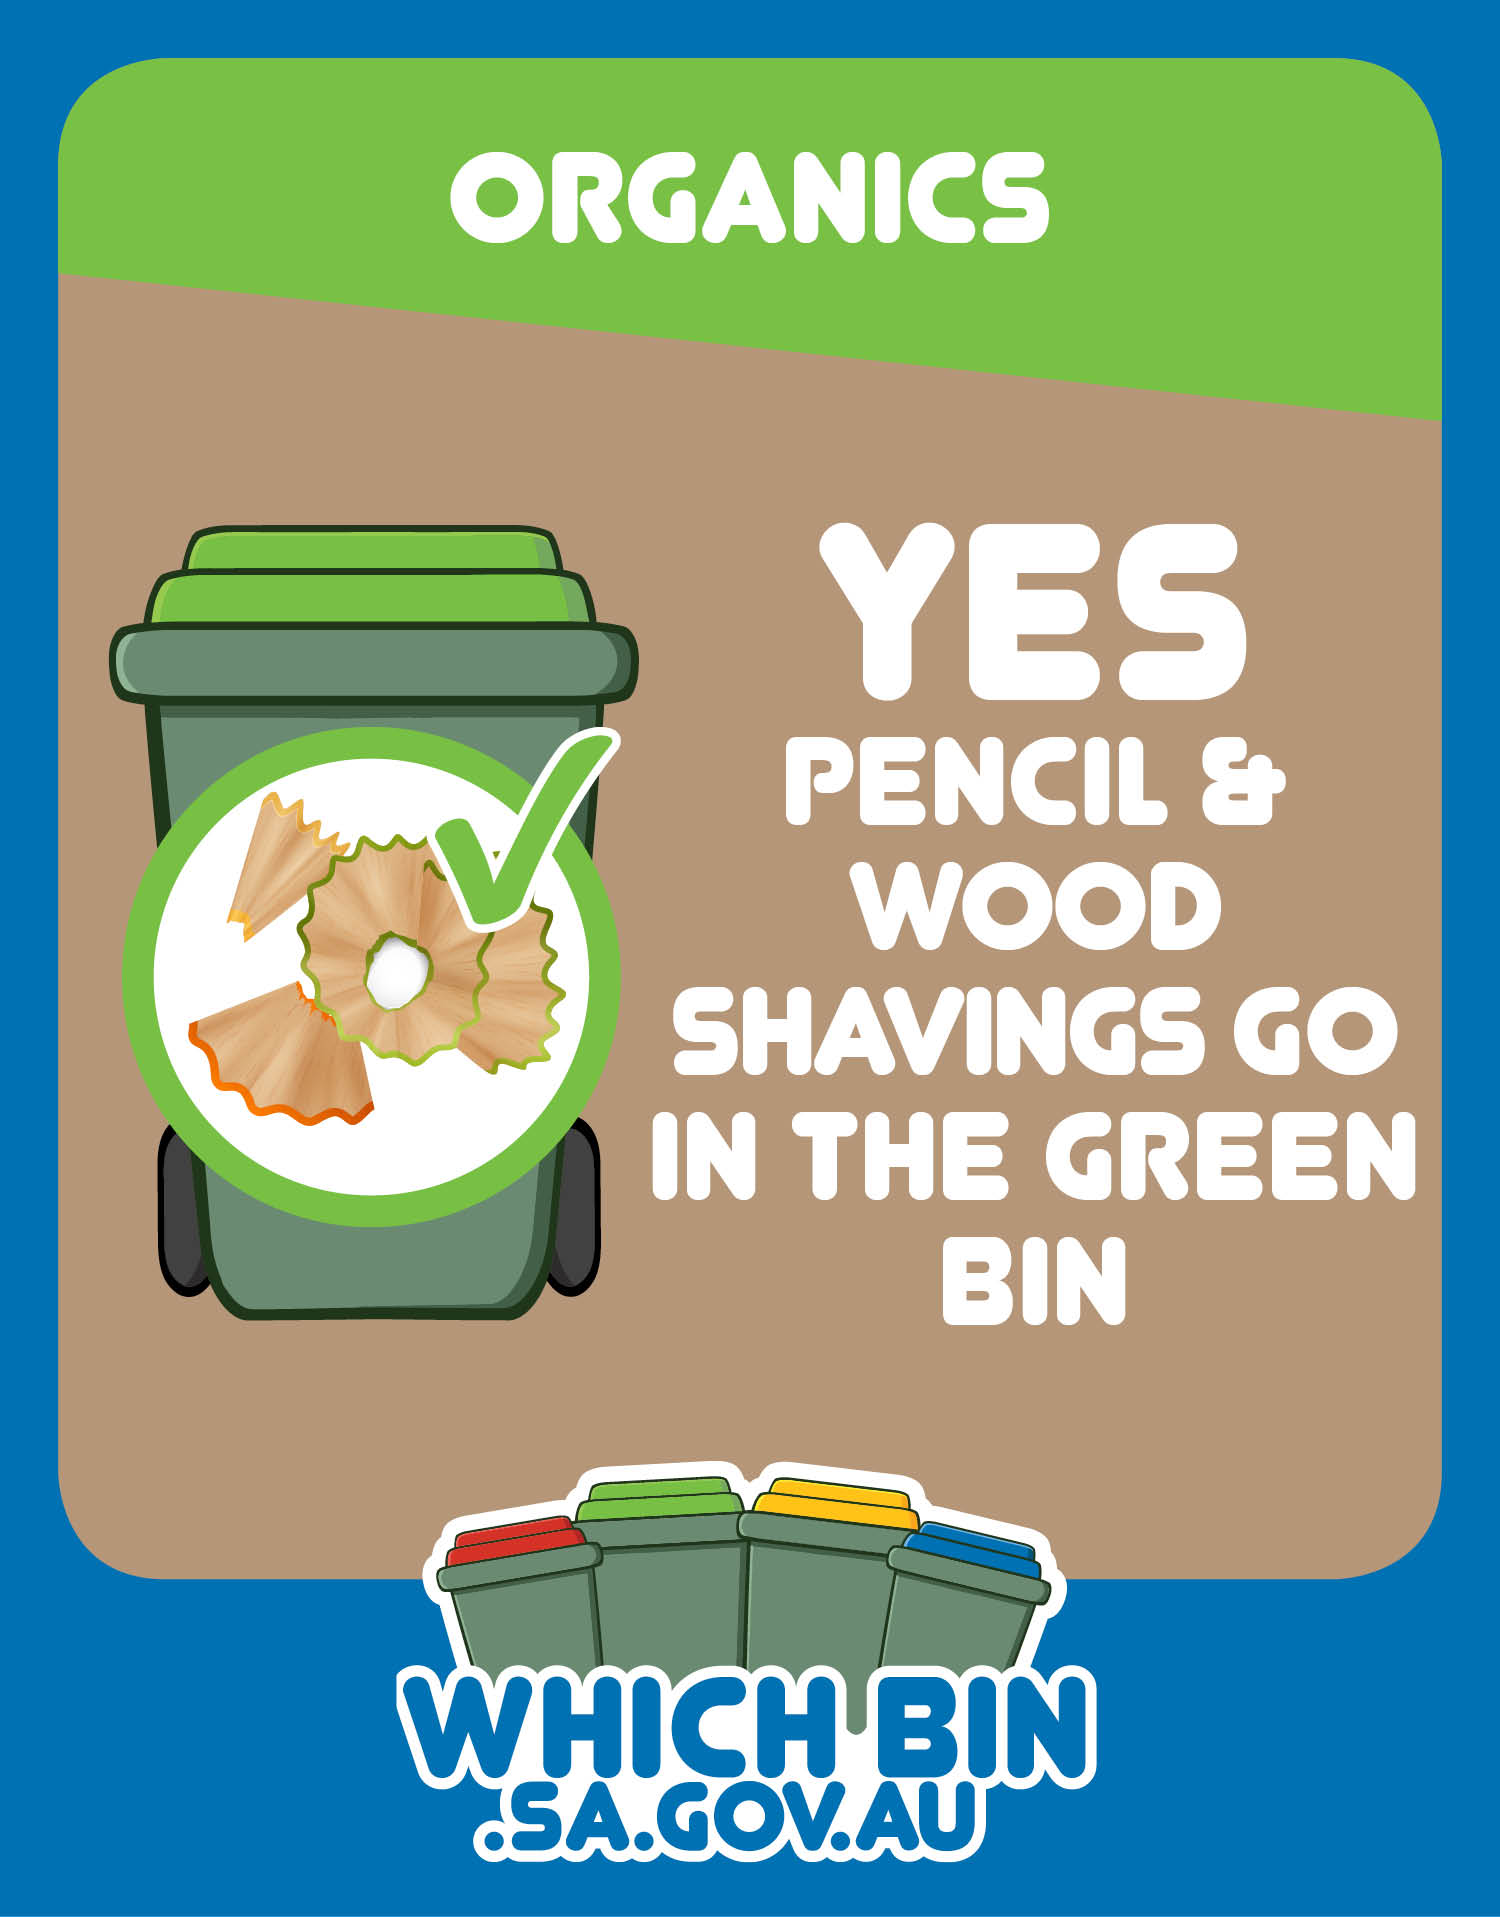 Pencil shavings are good to go in the green bin.